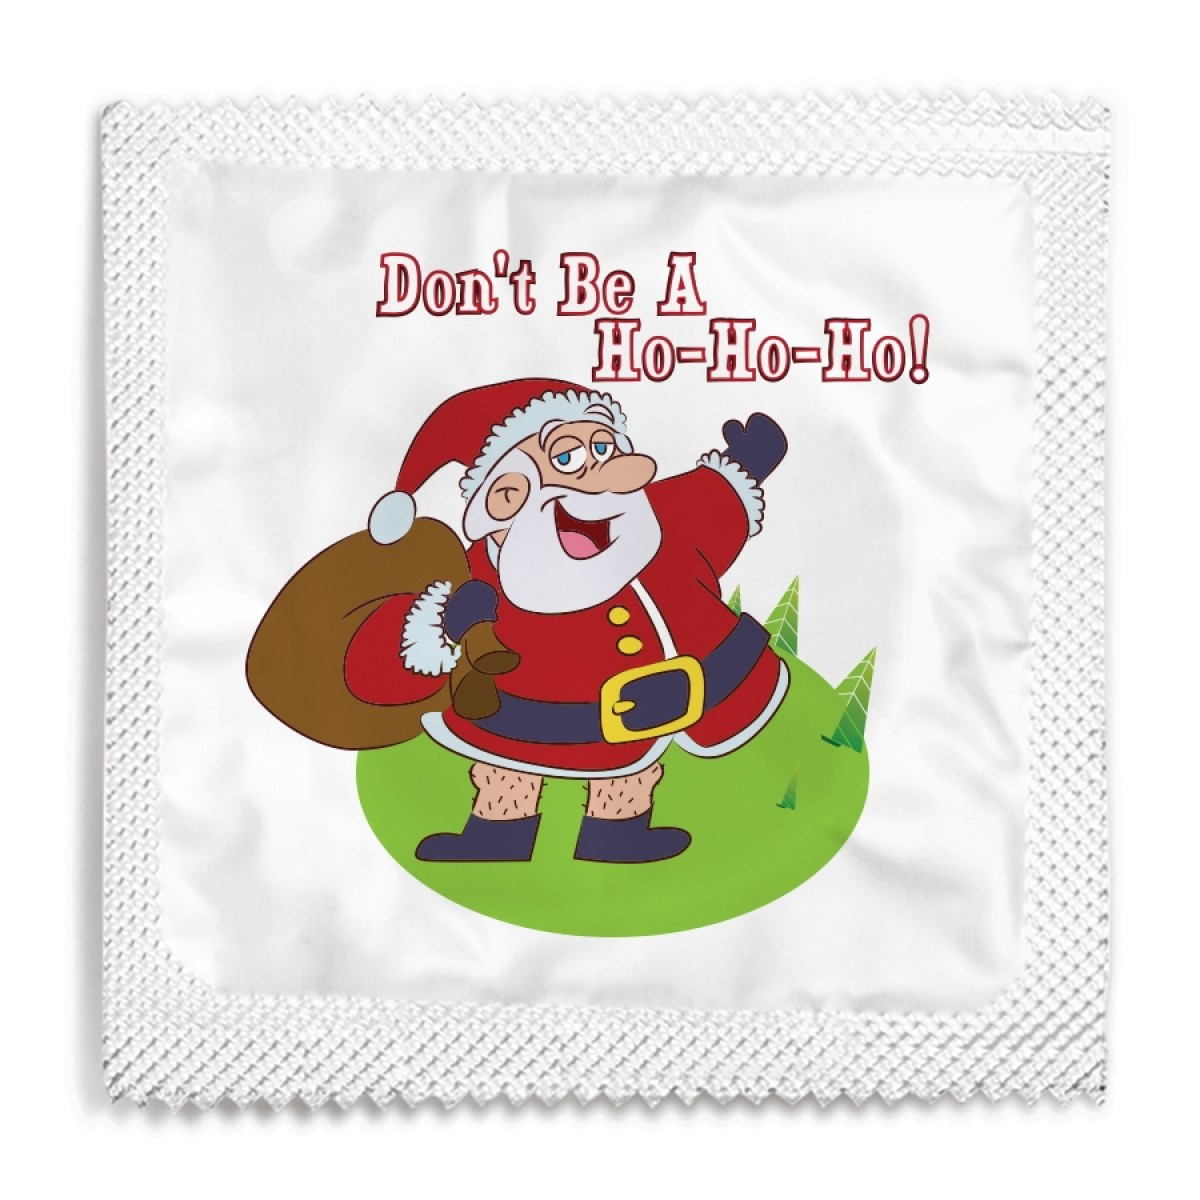 Don't Be A Ho-Ho-Ho Condom